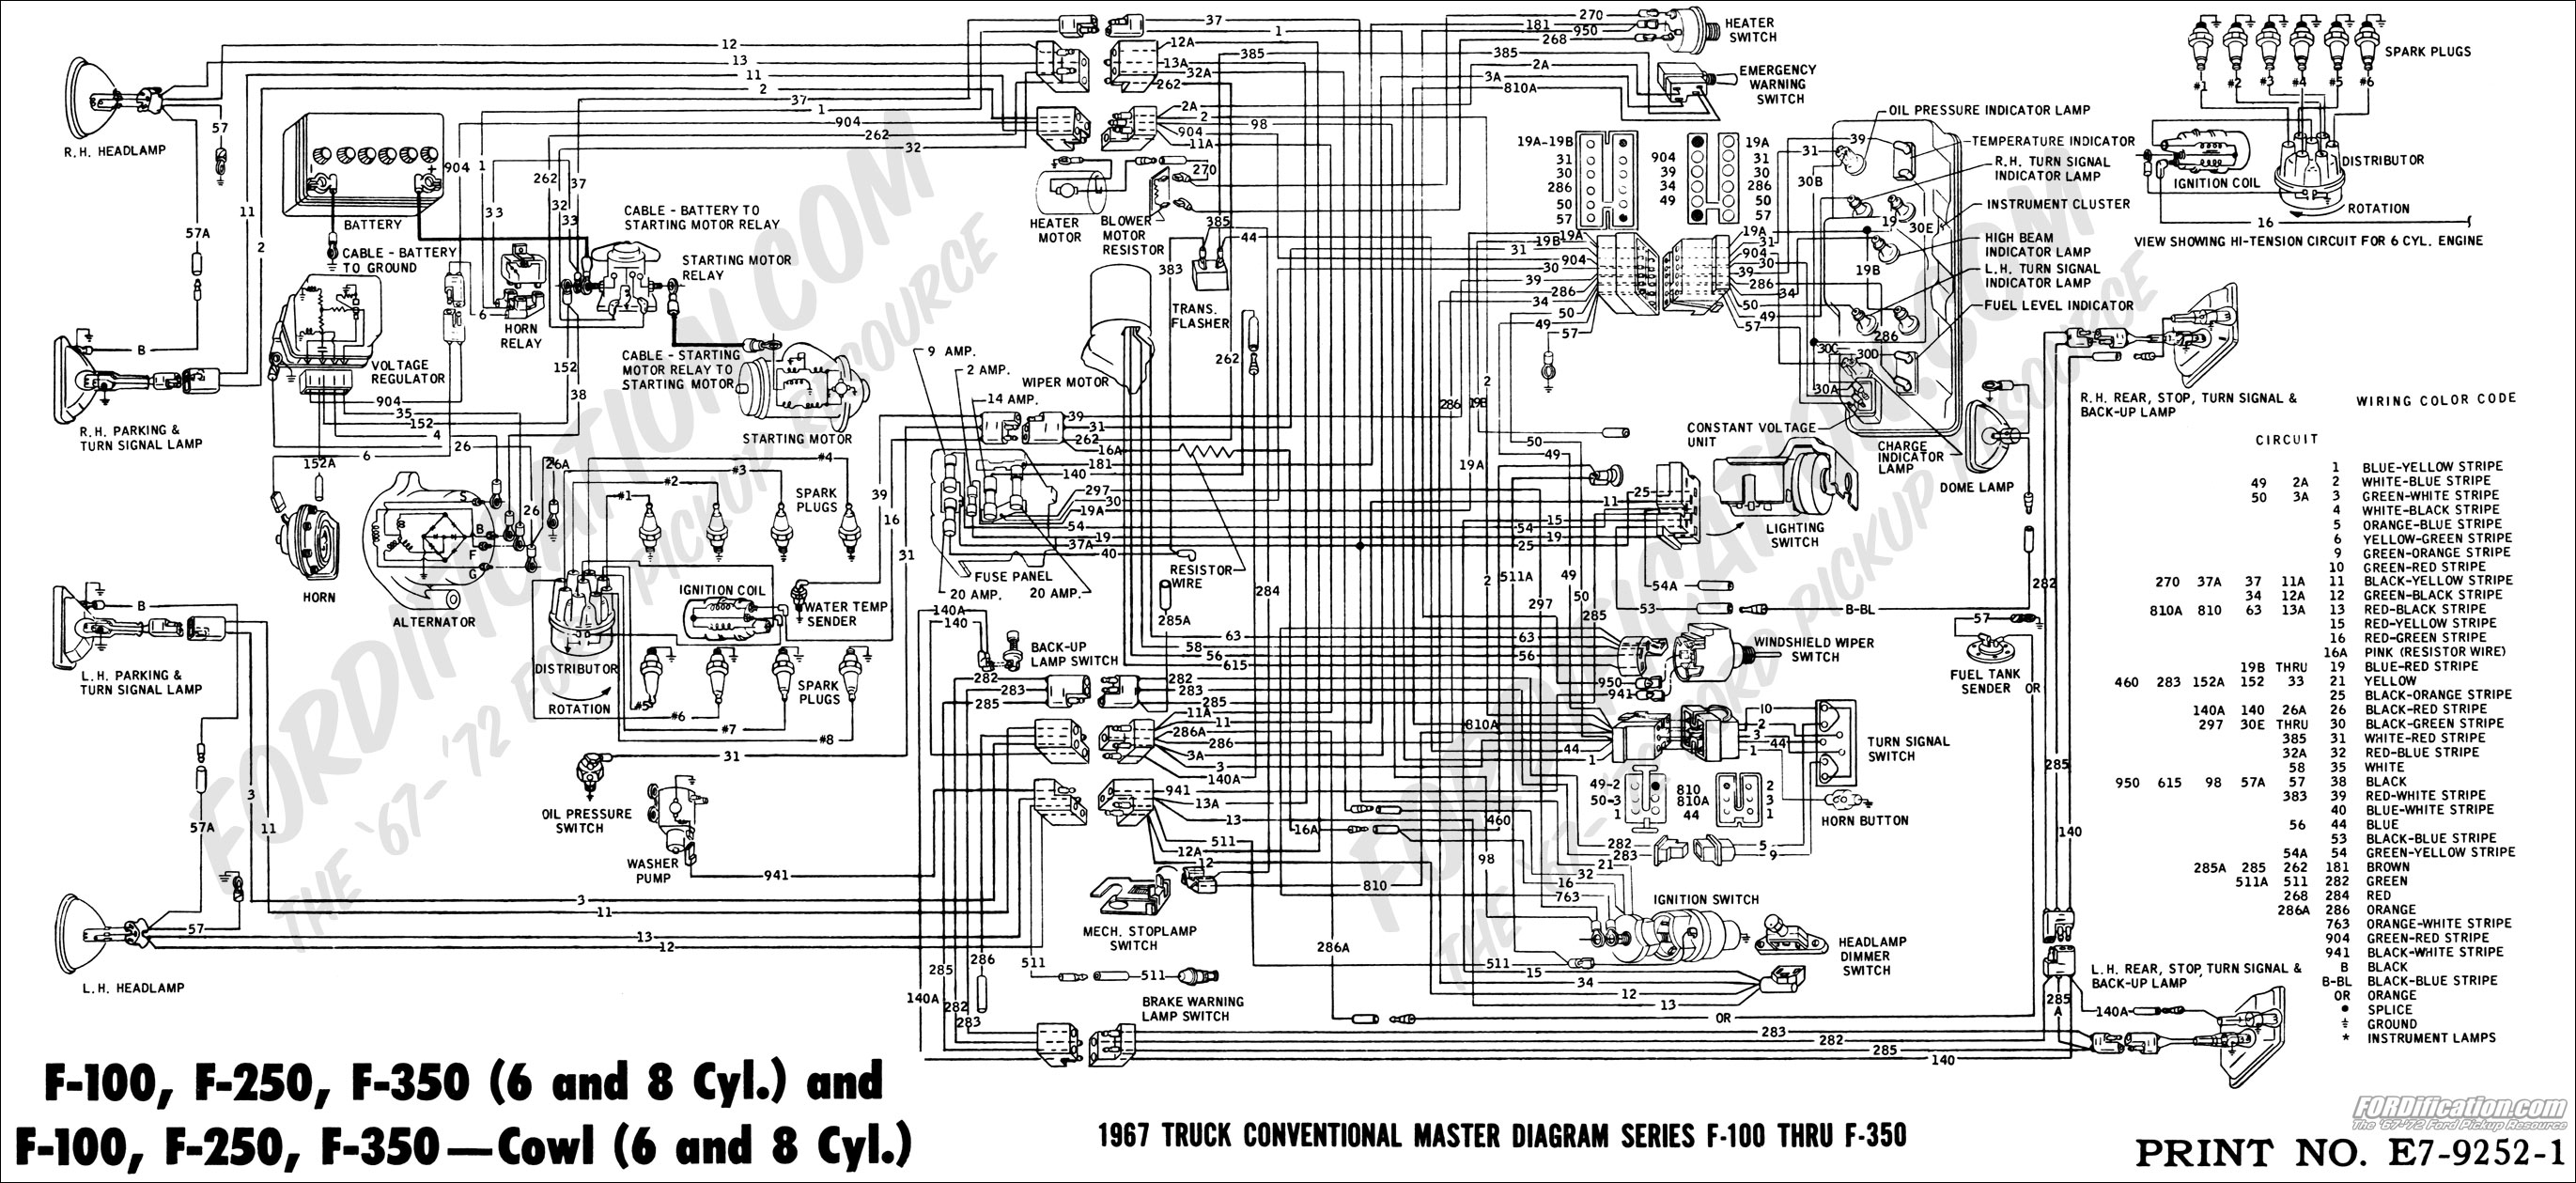 67masterdiagram ford truck technical drawings and schematics section h wiring ford wiring schematics at honlapkeszites.co